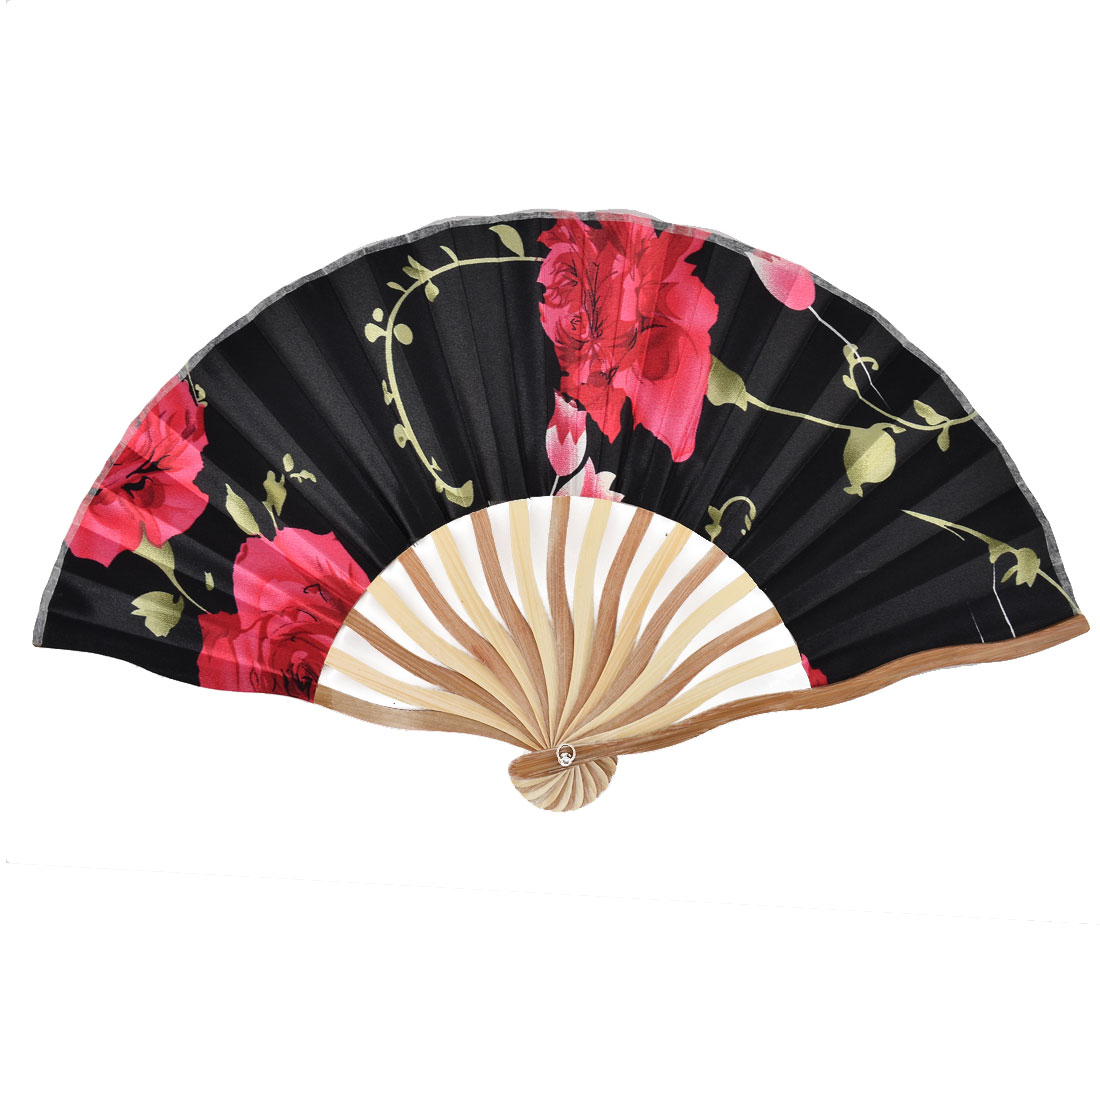 Bamboo Ribs Summer Cool Flower Pattern Portable Foldable Hand Fan Black w Bag